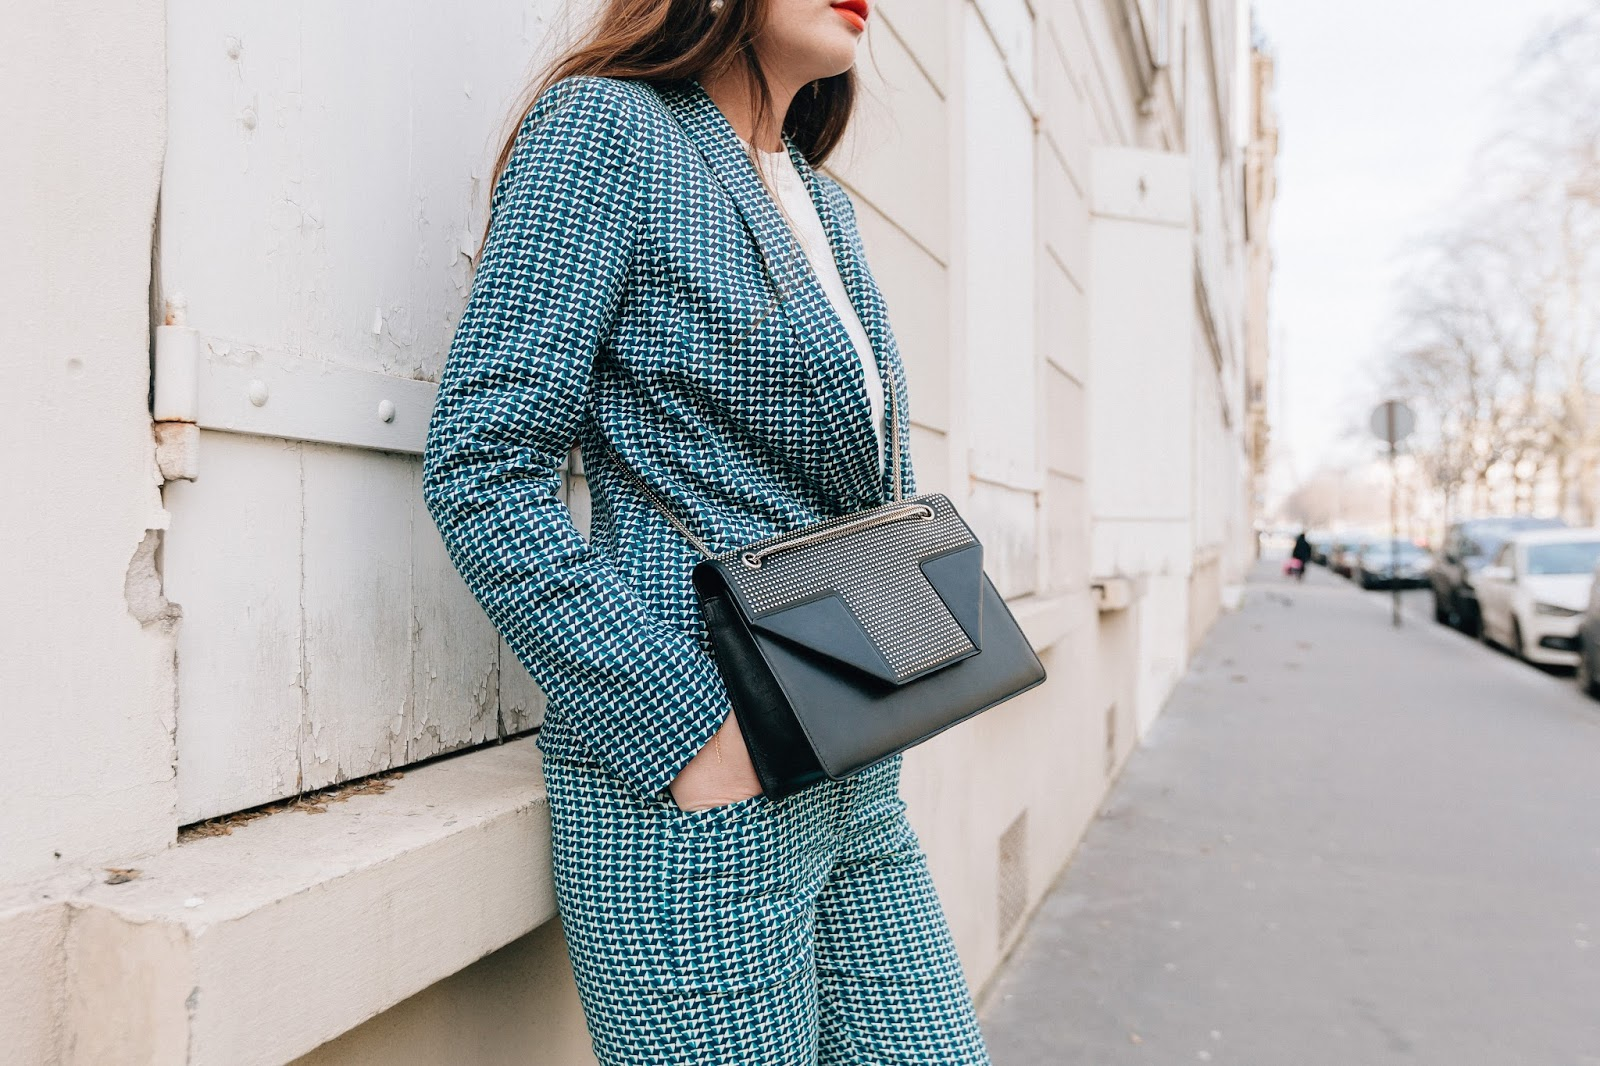 meet me in paree, blogger, fashion, style, look, paris, street style, blog mode, outfit of the day